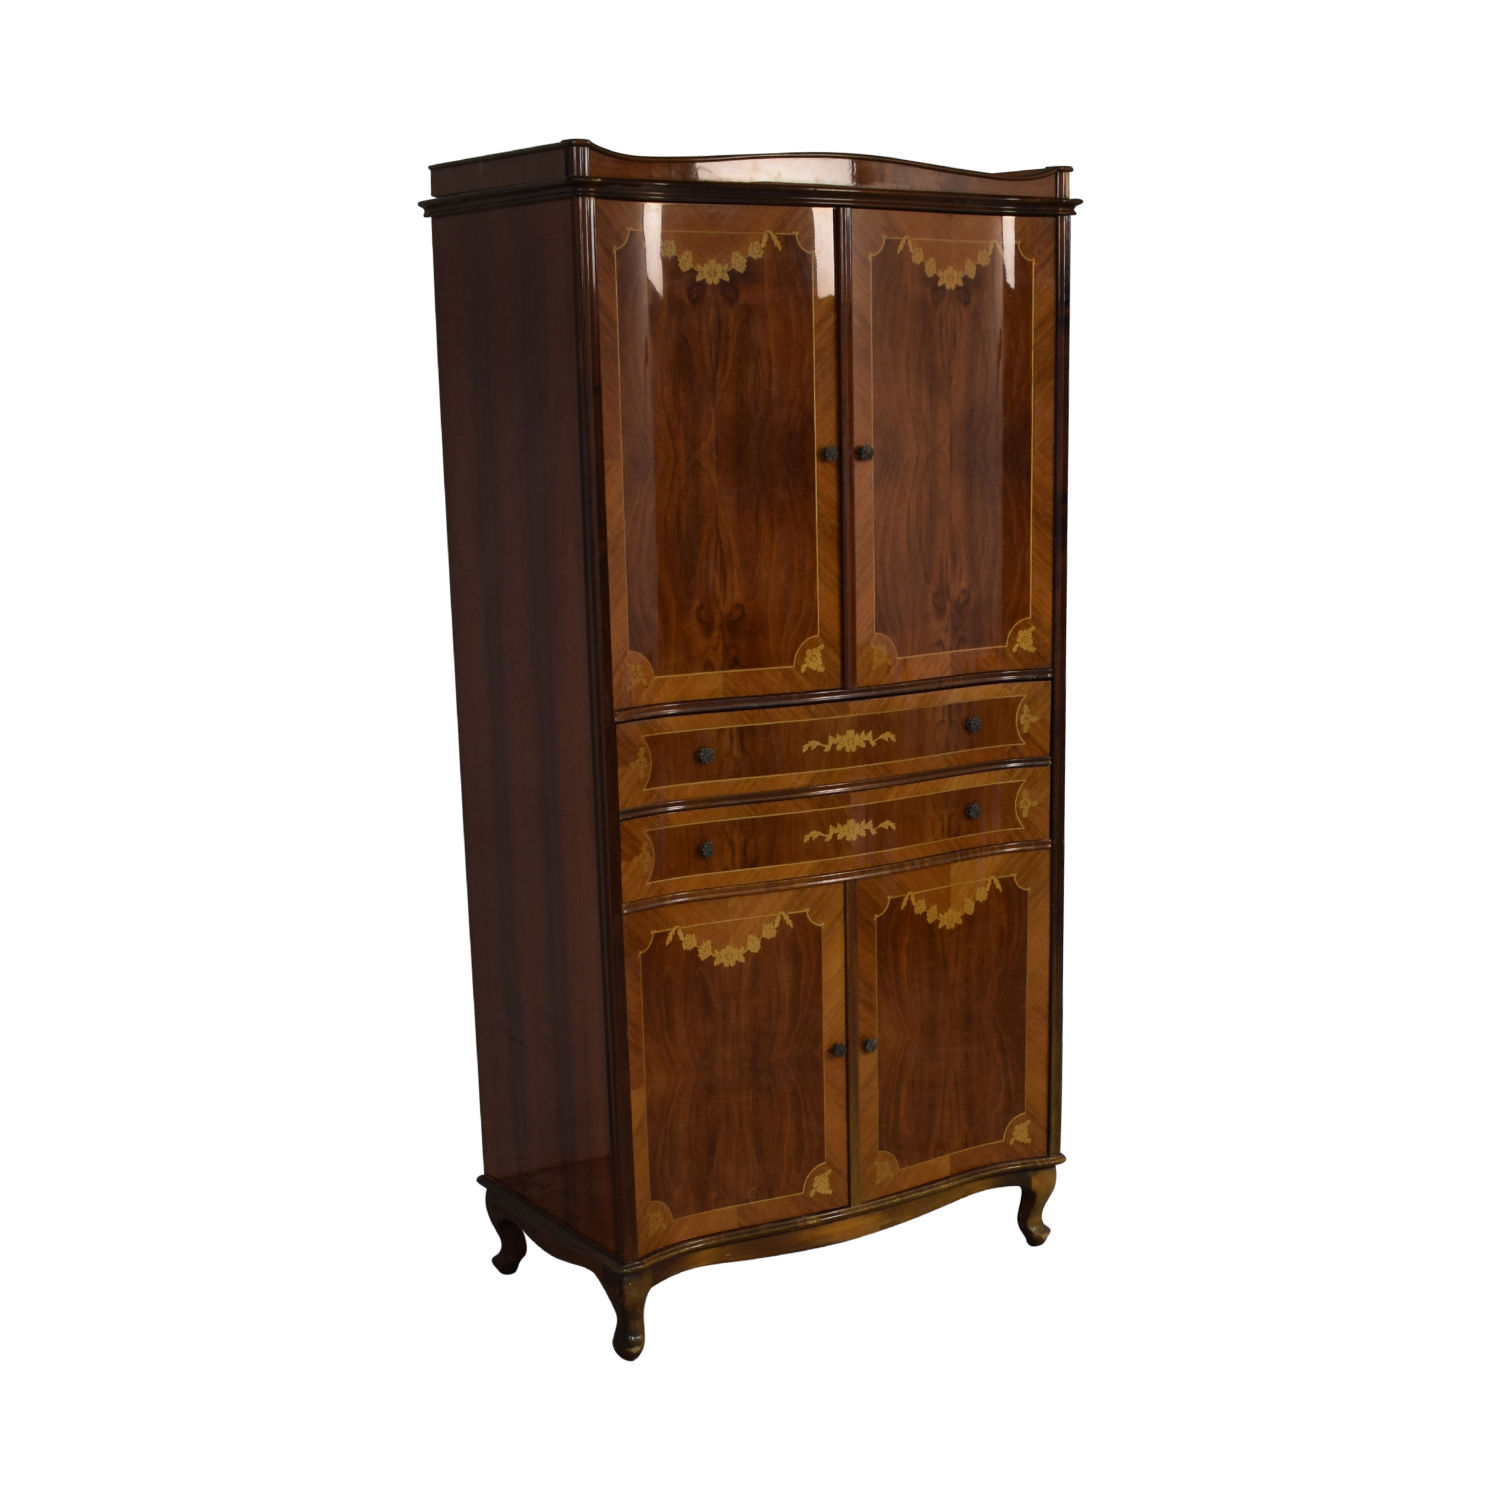 buy Roma Furniture Roma Furniture Armoire online